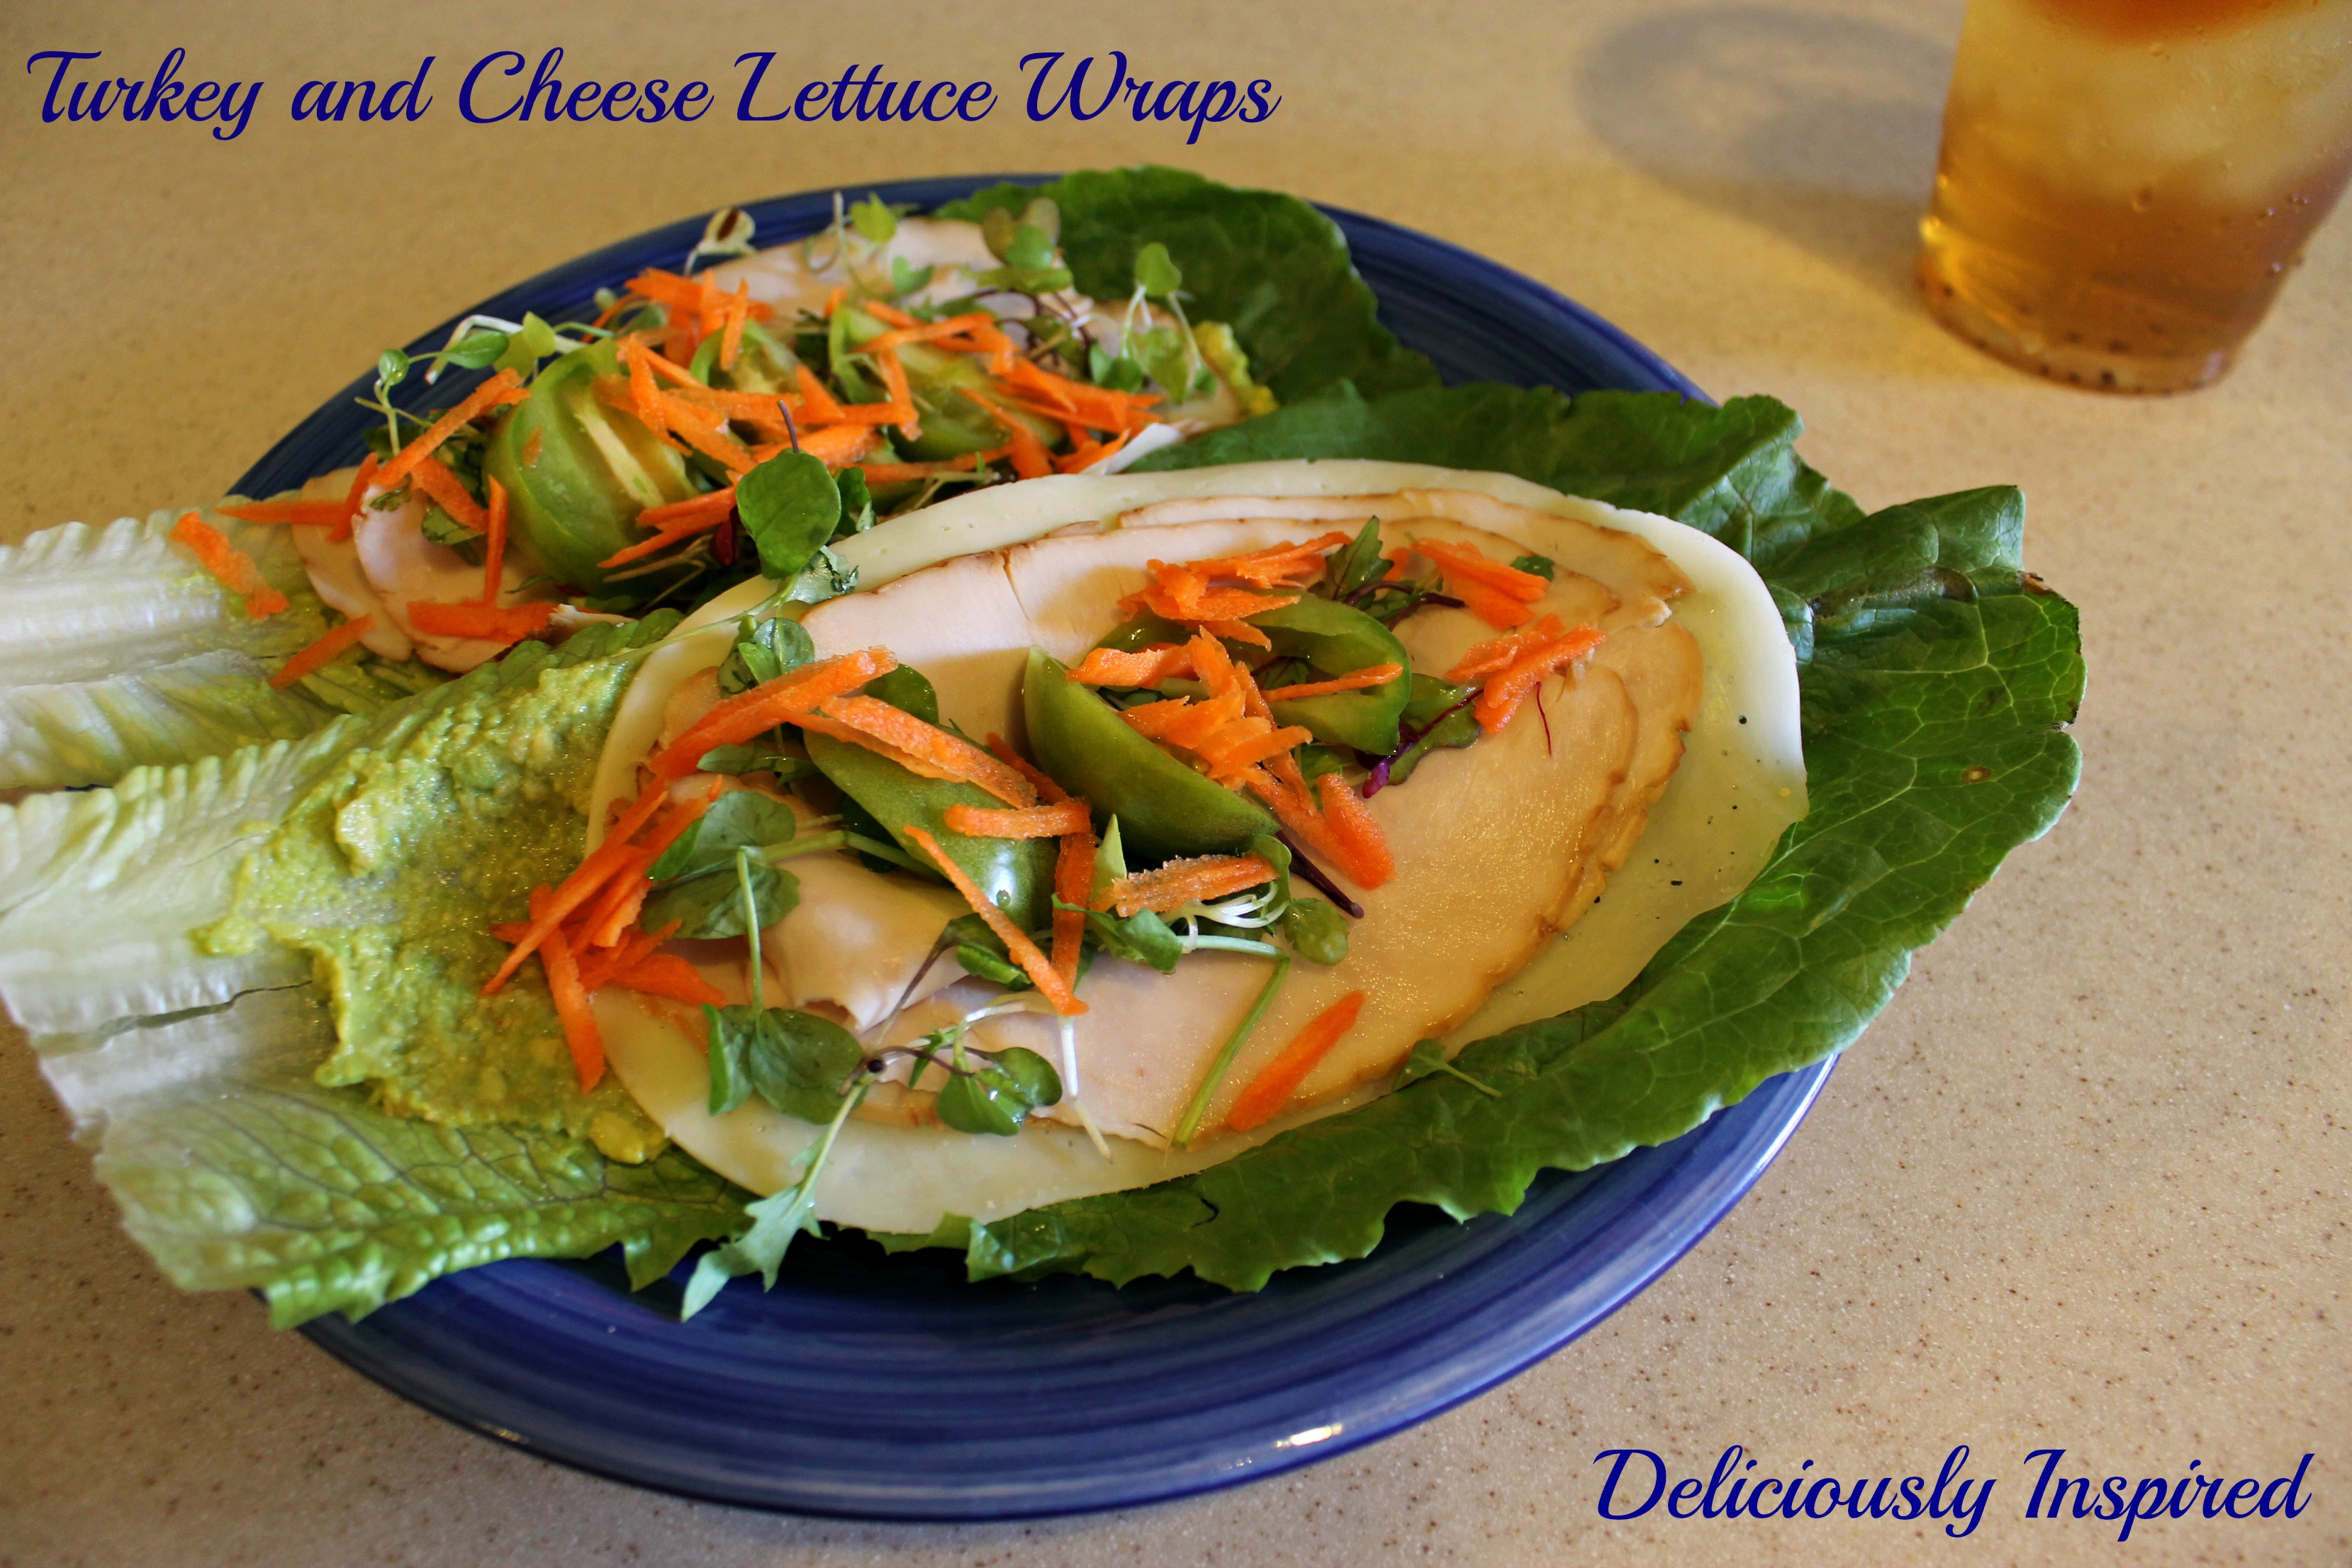 Turkey and Cheese Lettuce Wraps